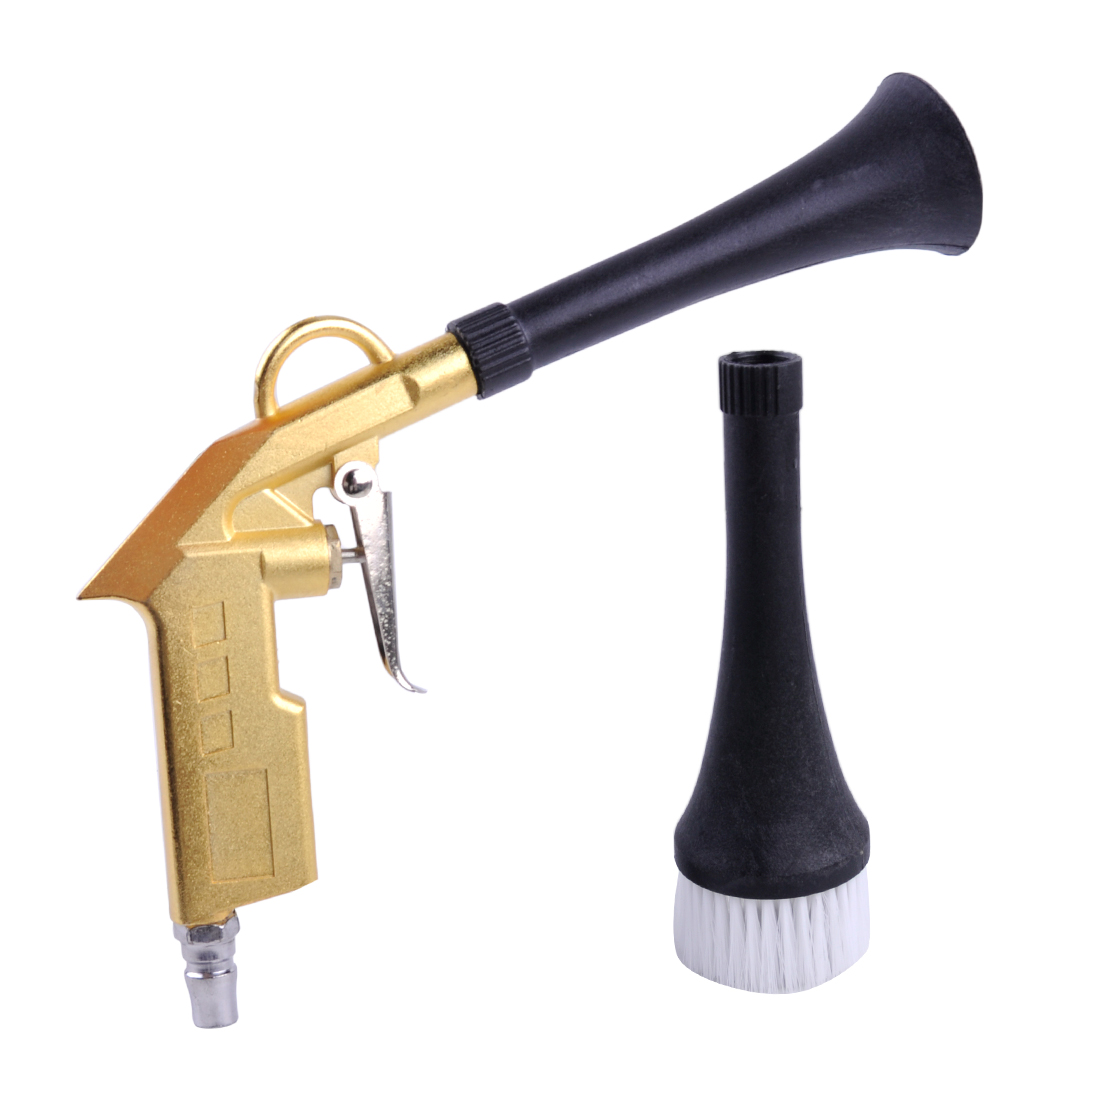 CITALL Universal Tornado Car Motorcycle Machine Dry Cleaning Gun Brush Funnel Interior Clean Funnel Without Brush Spray Tool